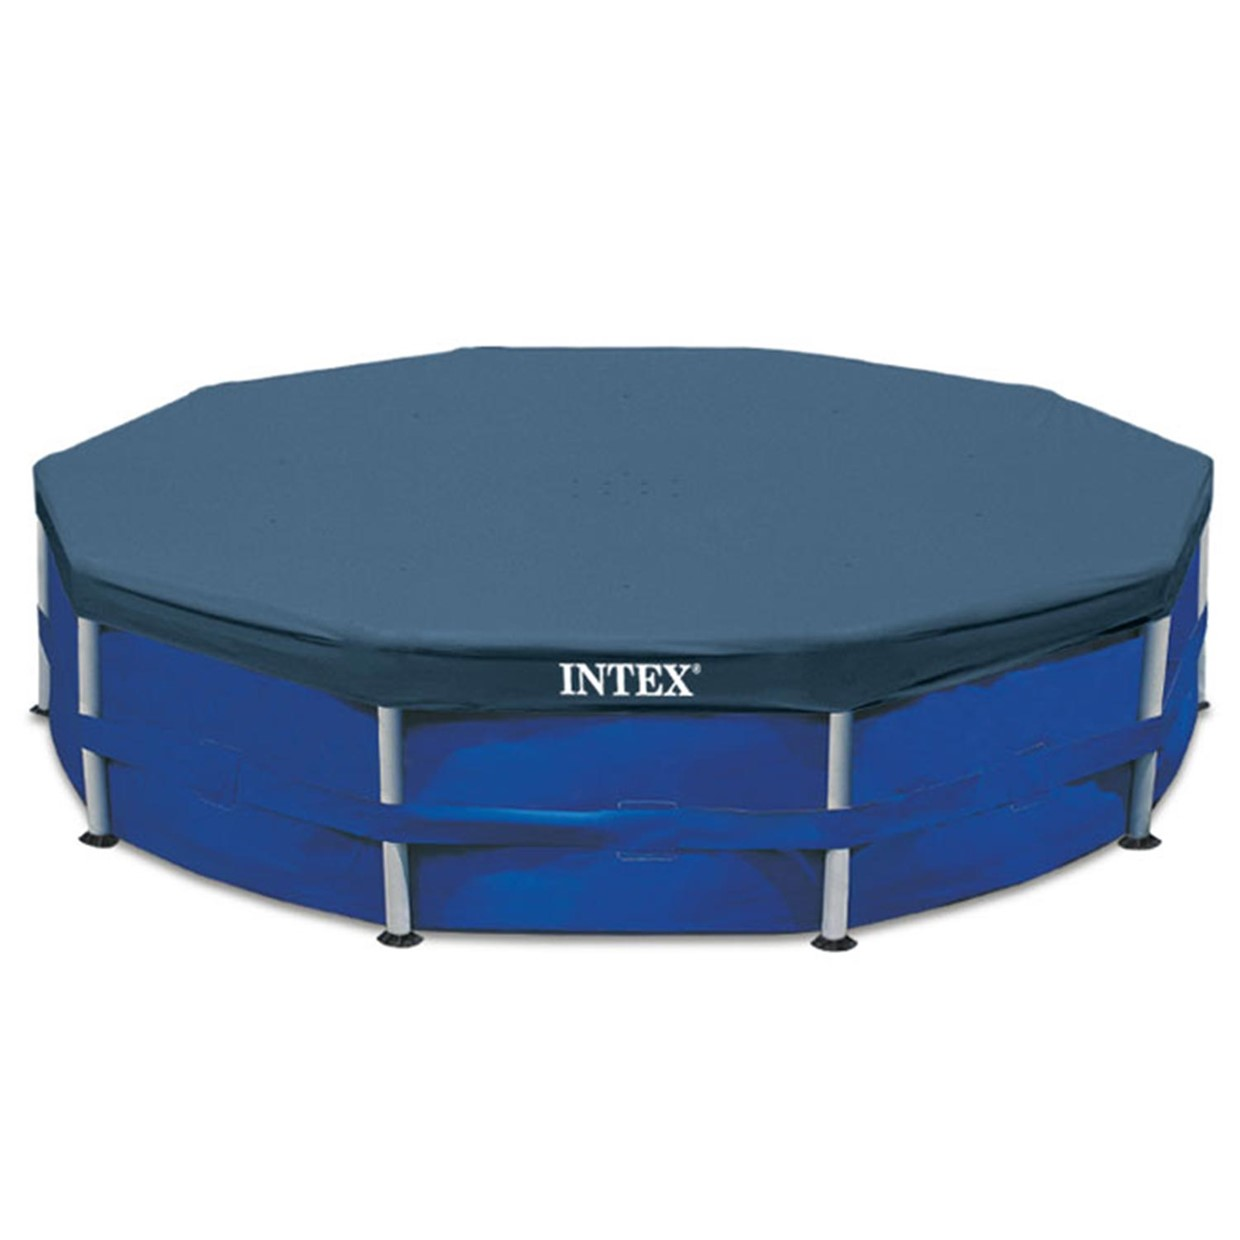 Intex afdekzeil rond frame 457 cm de boer for Intex mini frame pool afdekzeil